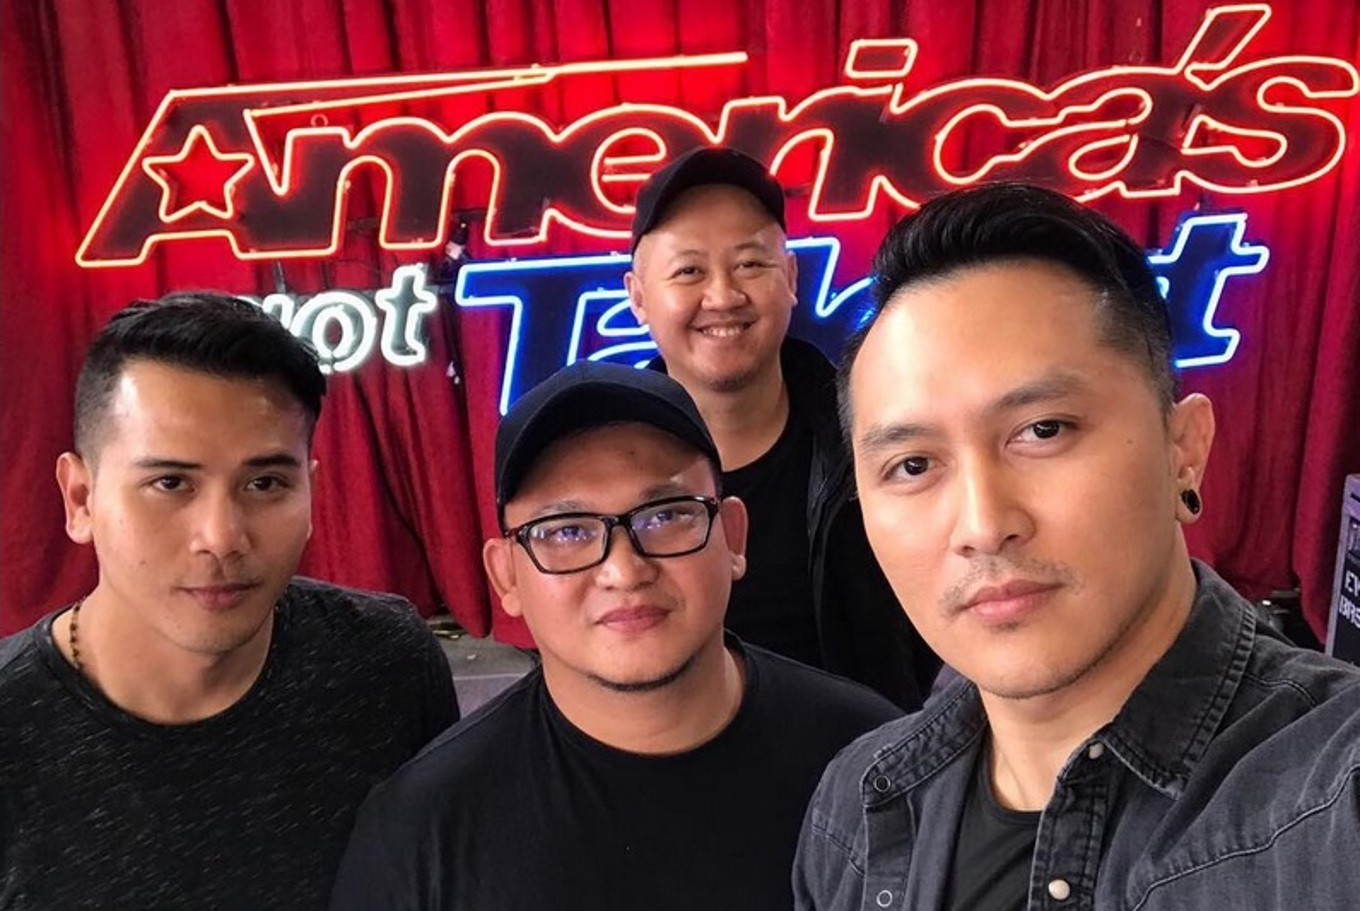 Americas got talent 2017 science guy - Demian And His Crew Prior To Performing On America S Got Talent Instagram Com _demianaditya_ File